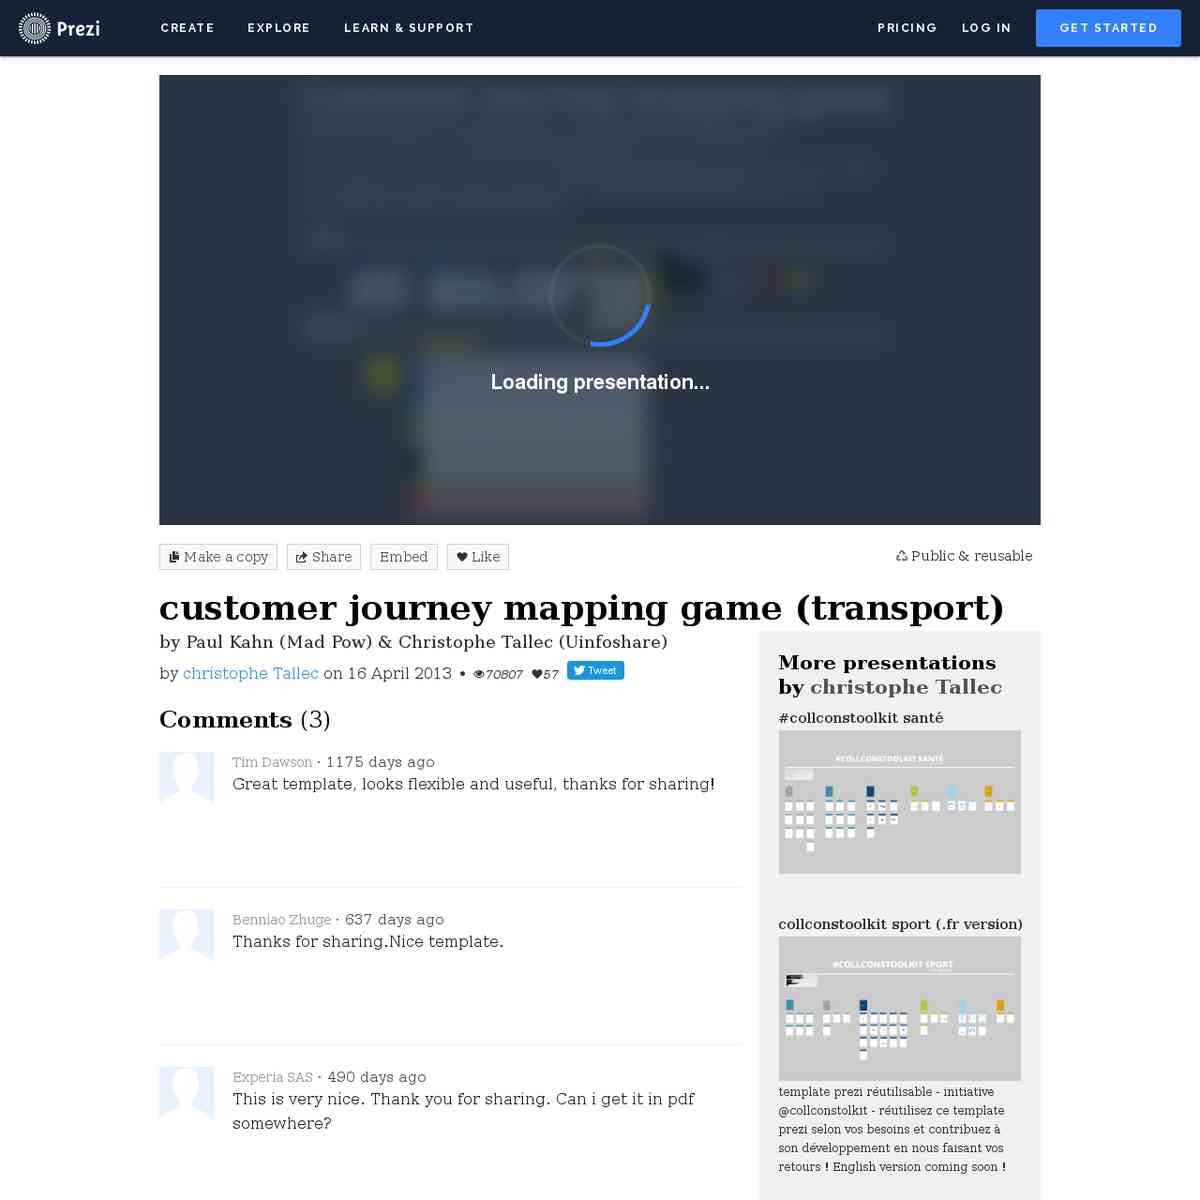 customer journey mapping game (transport) by christophe Tallec on Prezi